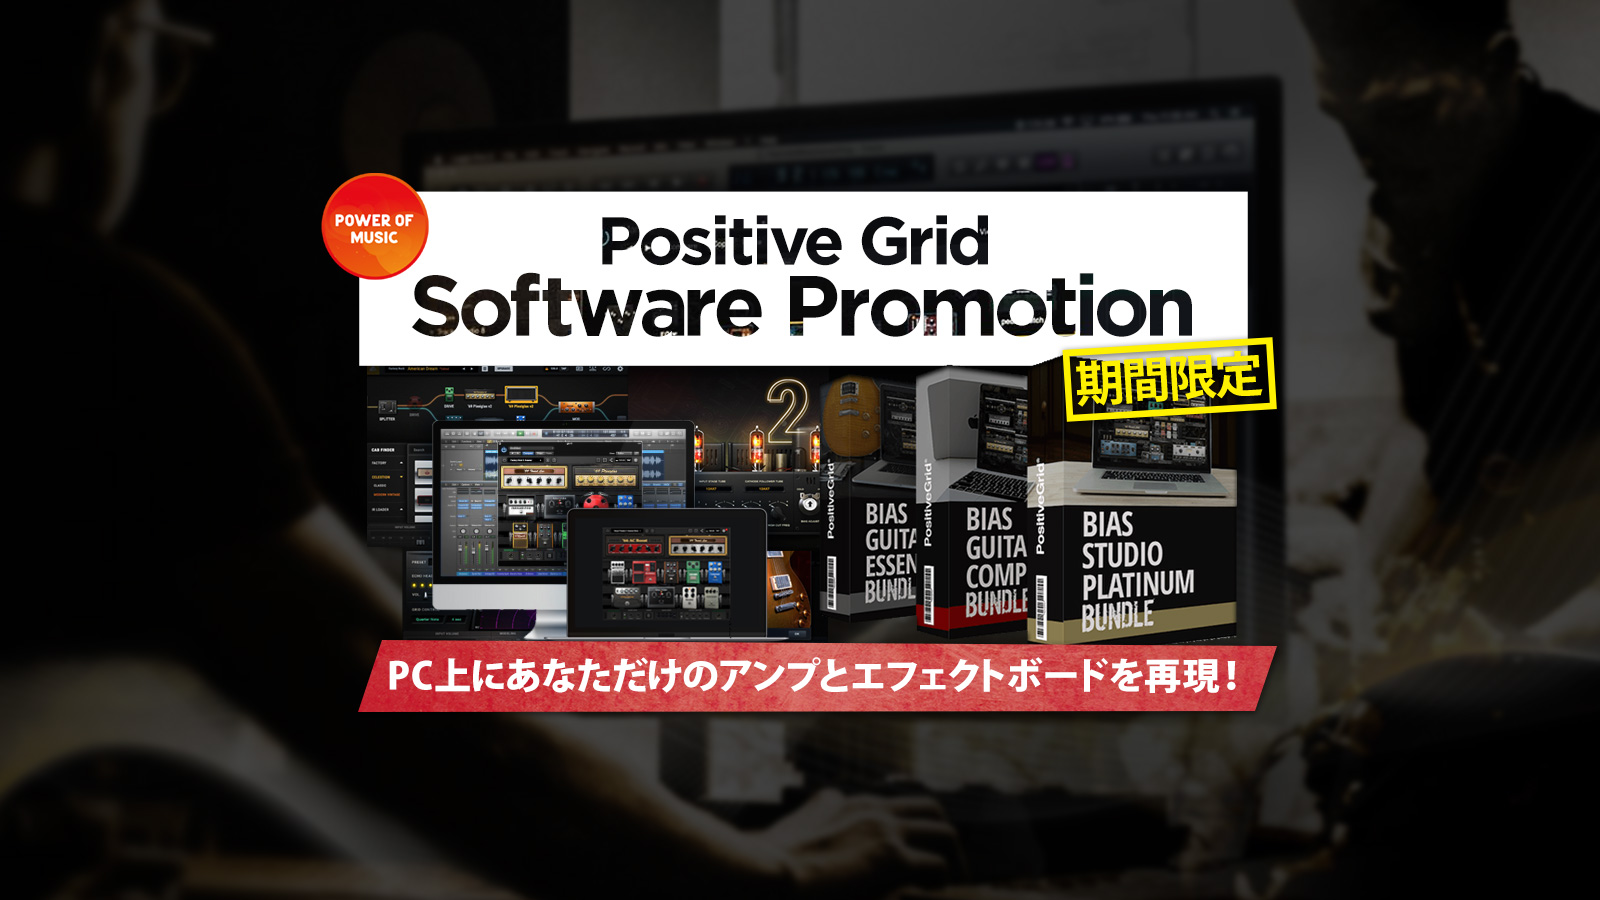 Positive Grid Spring Software Promotion